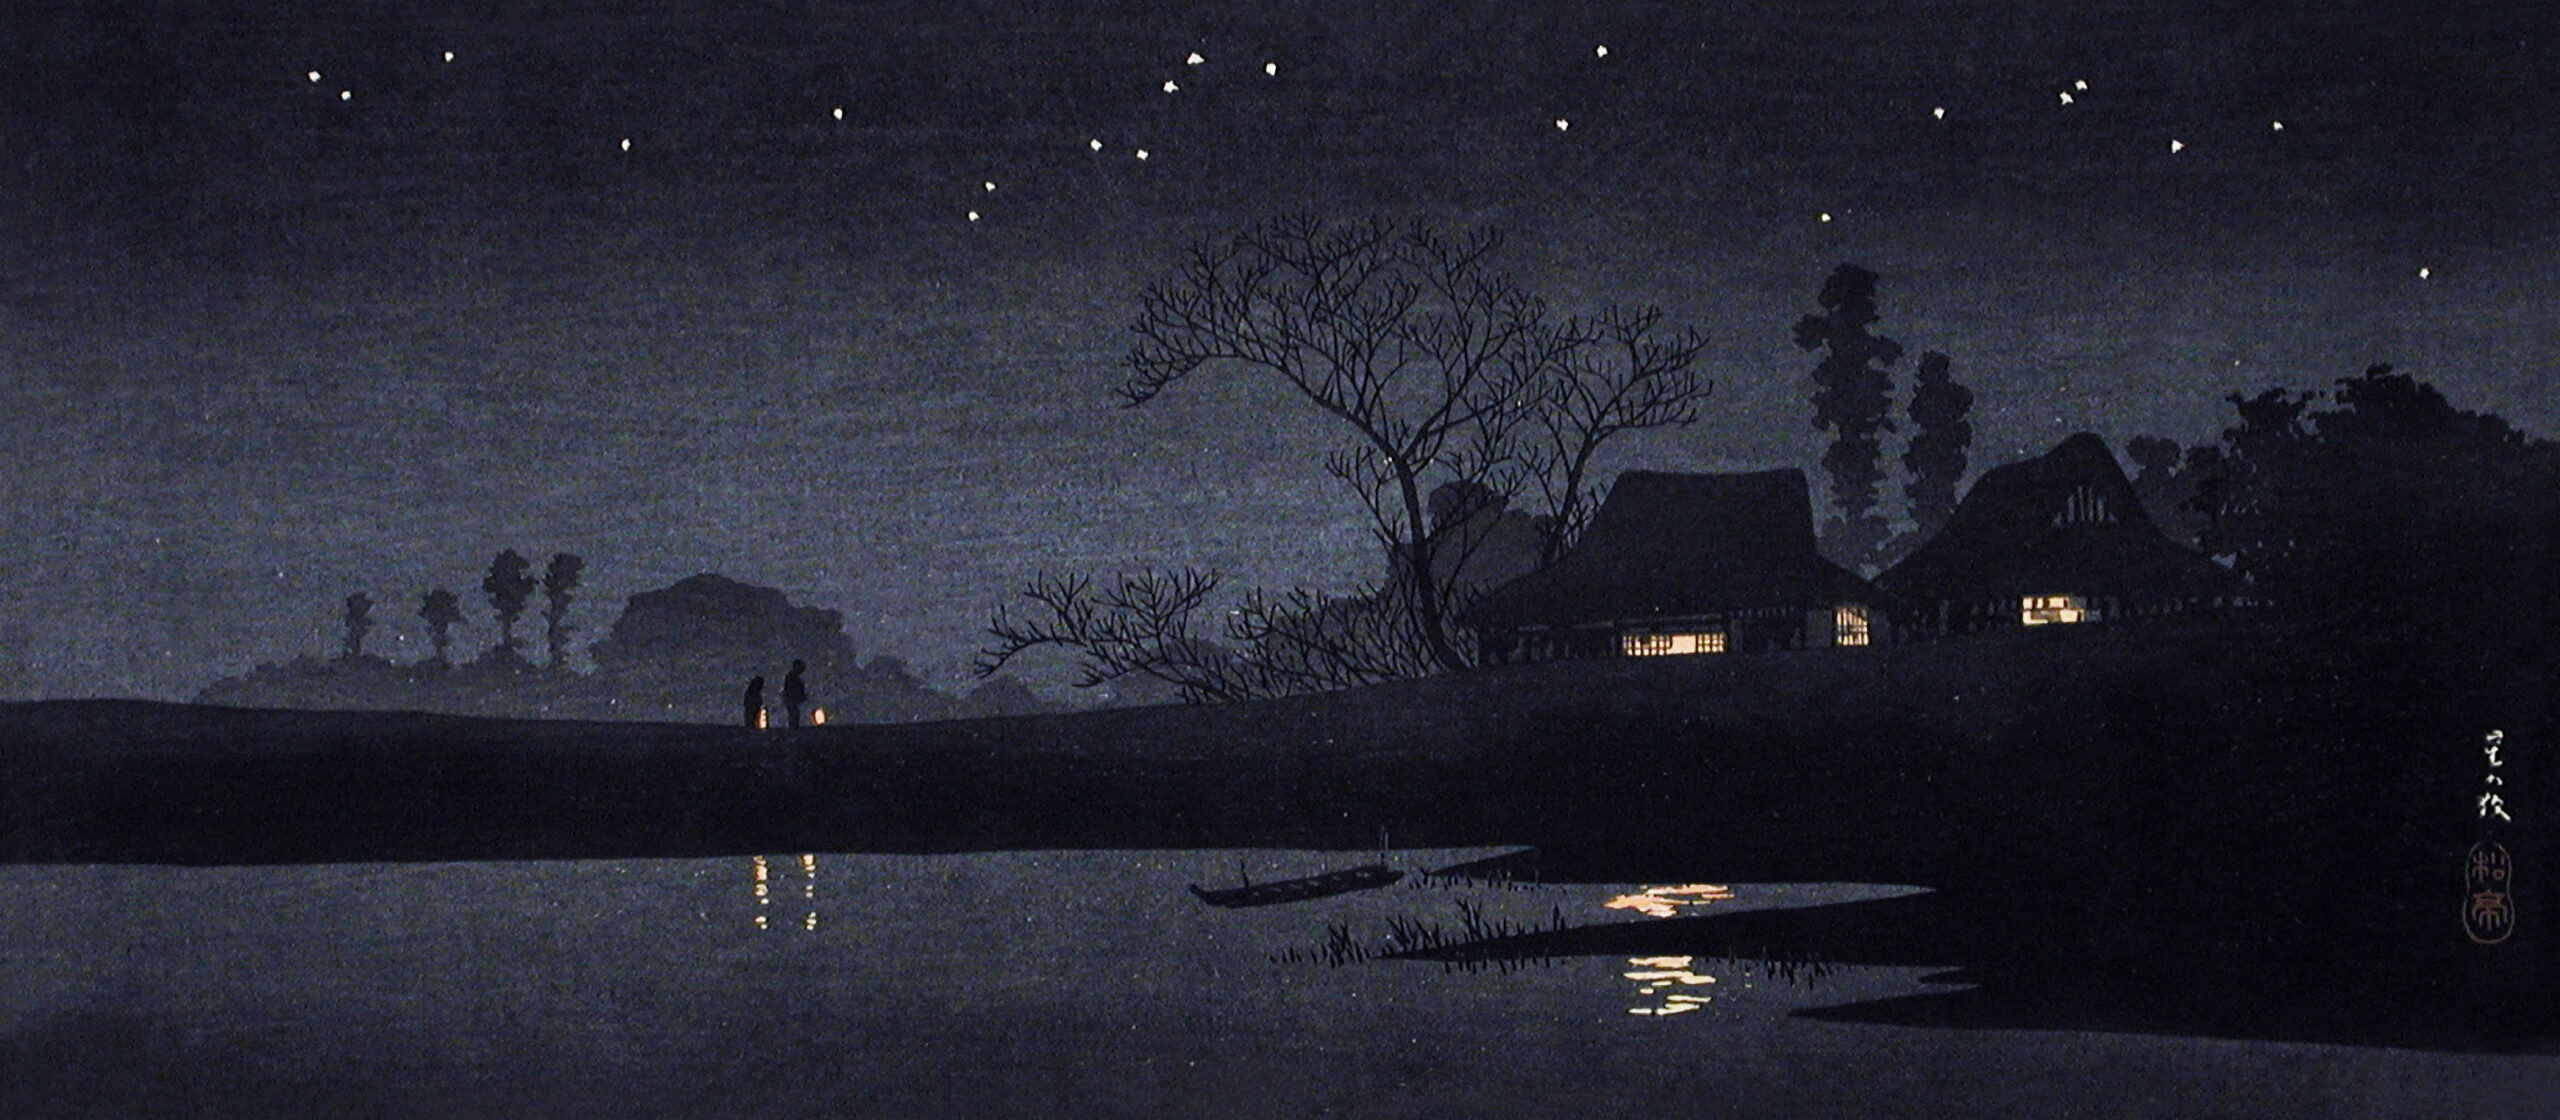 Starry Night (ca.1926–1927) print in high resolution by Hiroaki Takahashi. Original from The Los Angeles County Museum of Art. Digitally enhanced by rawpixel.